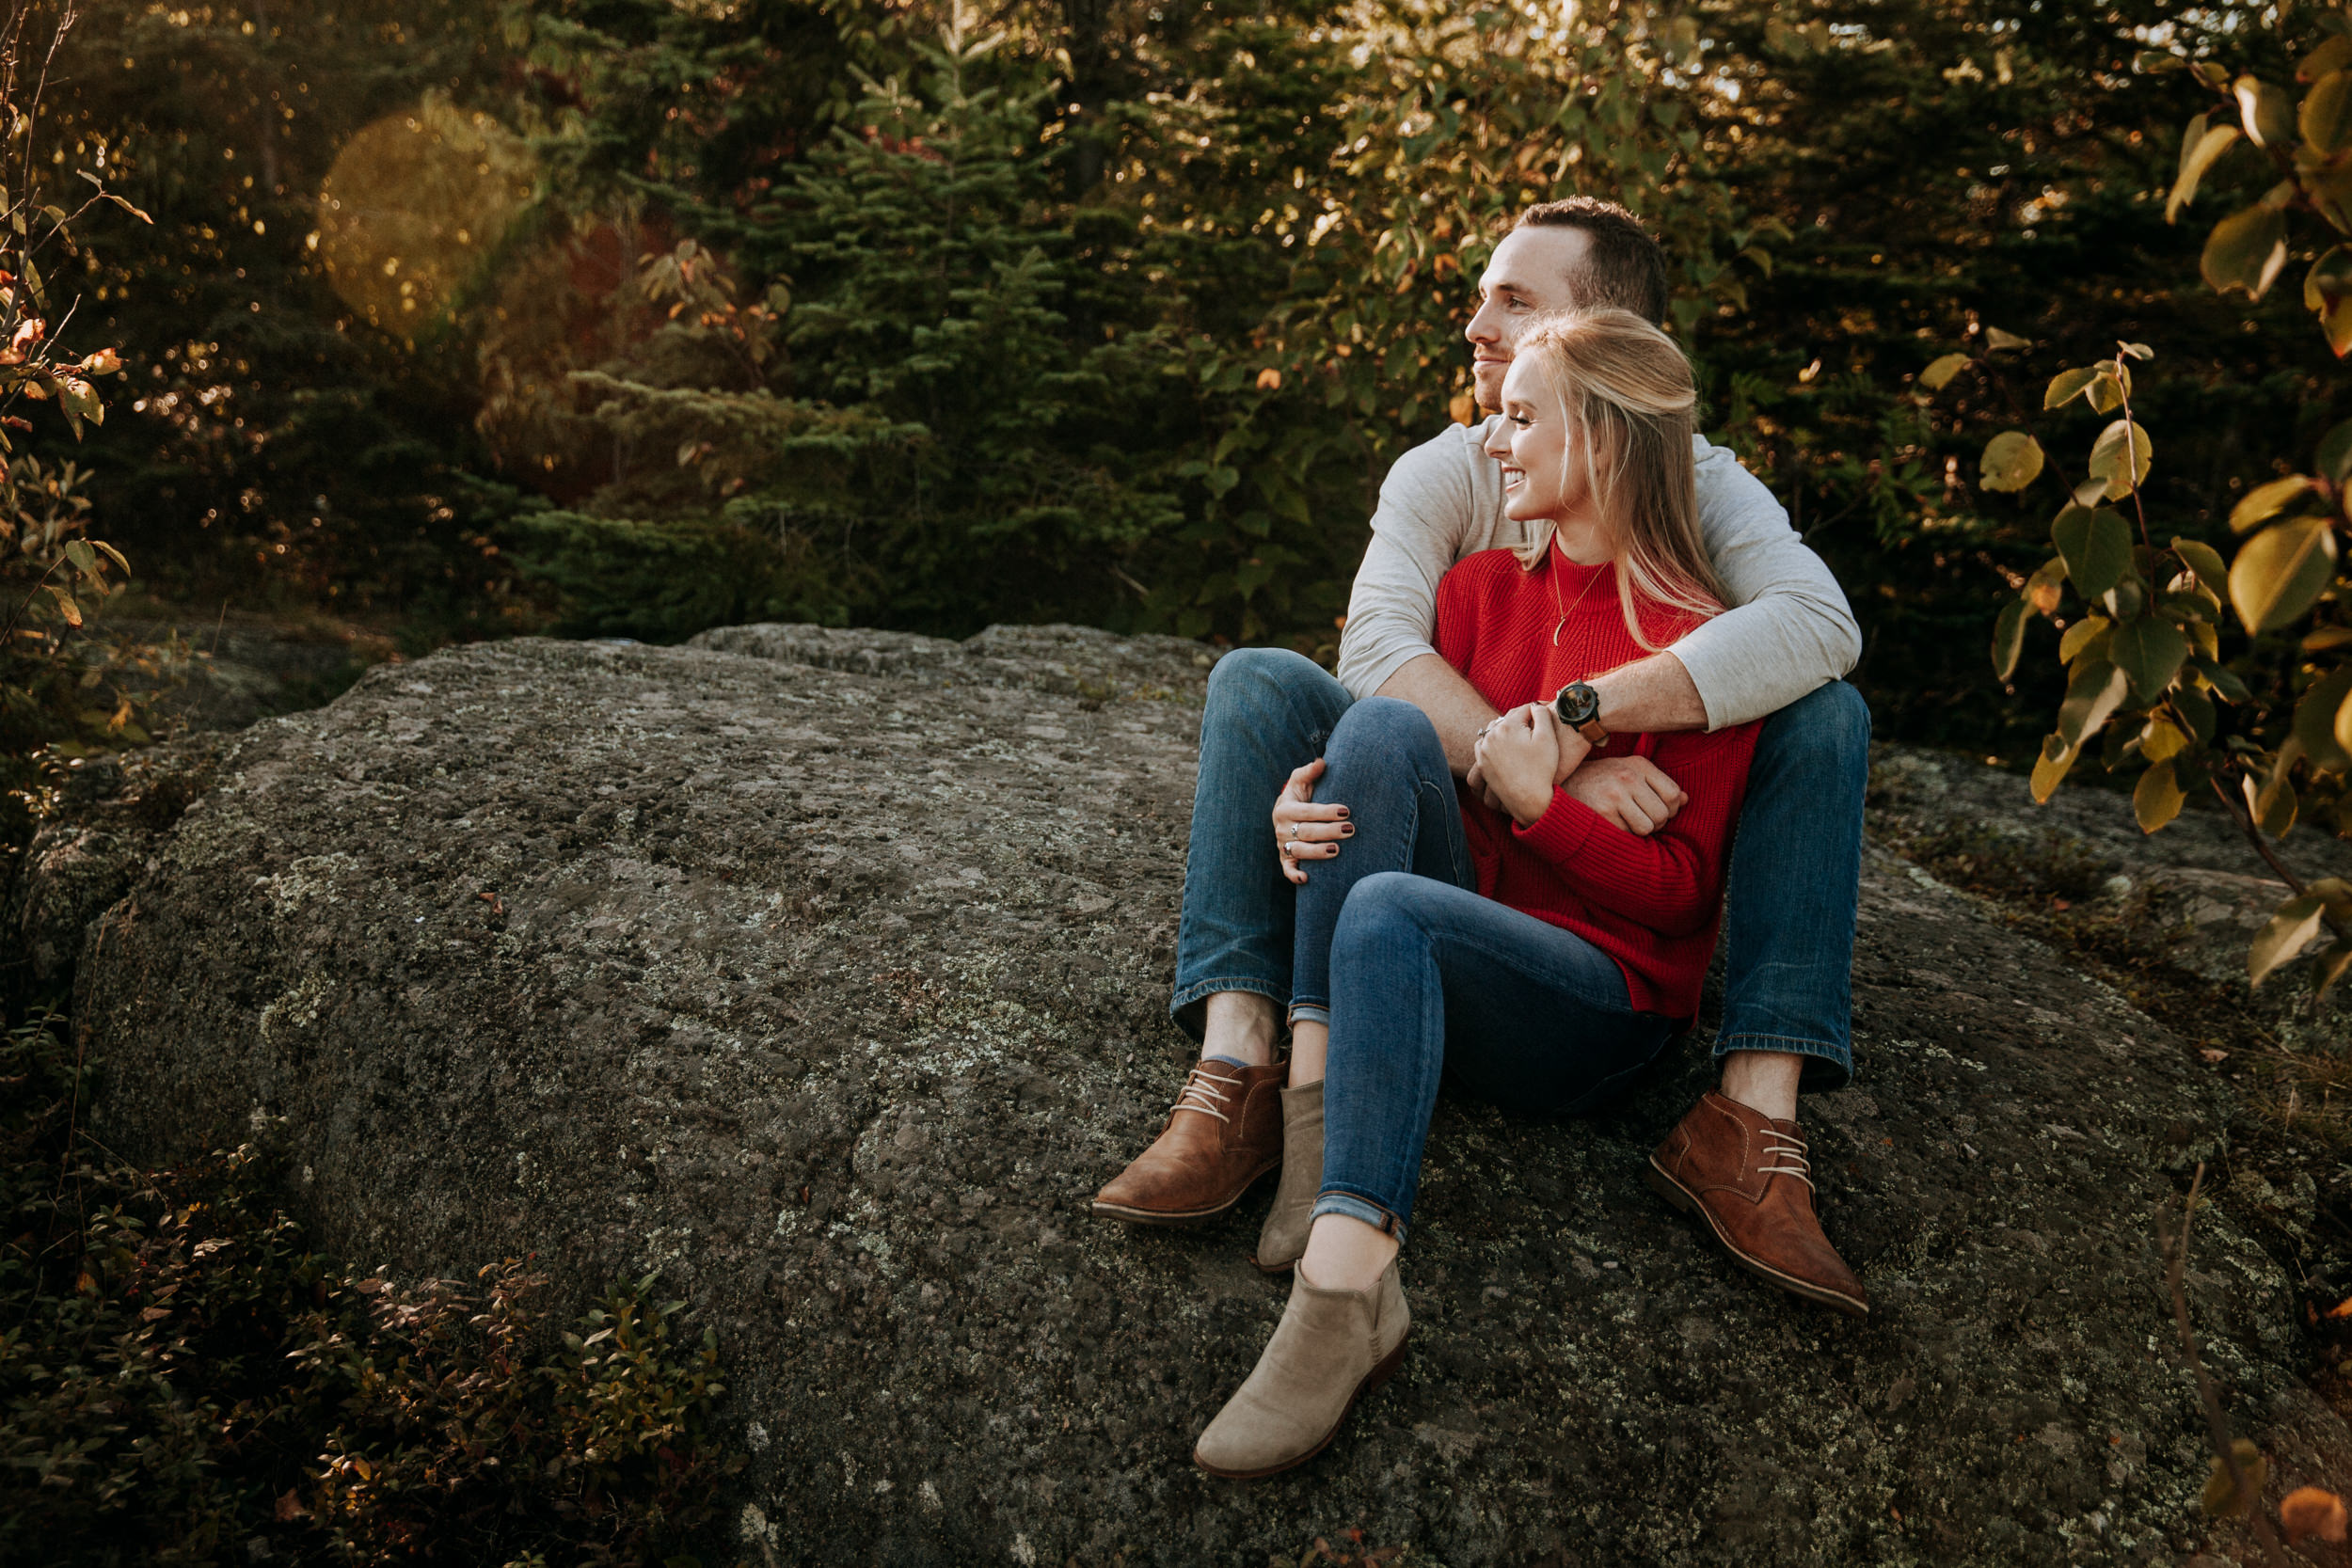 Tettagouche-North-Shore-MN-Hiking-Engagement-Photos-moody-Narrowleaf-love-and-adventure-photography-5189.jpg